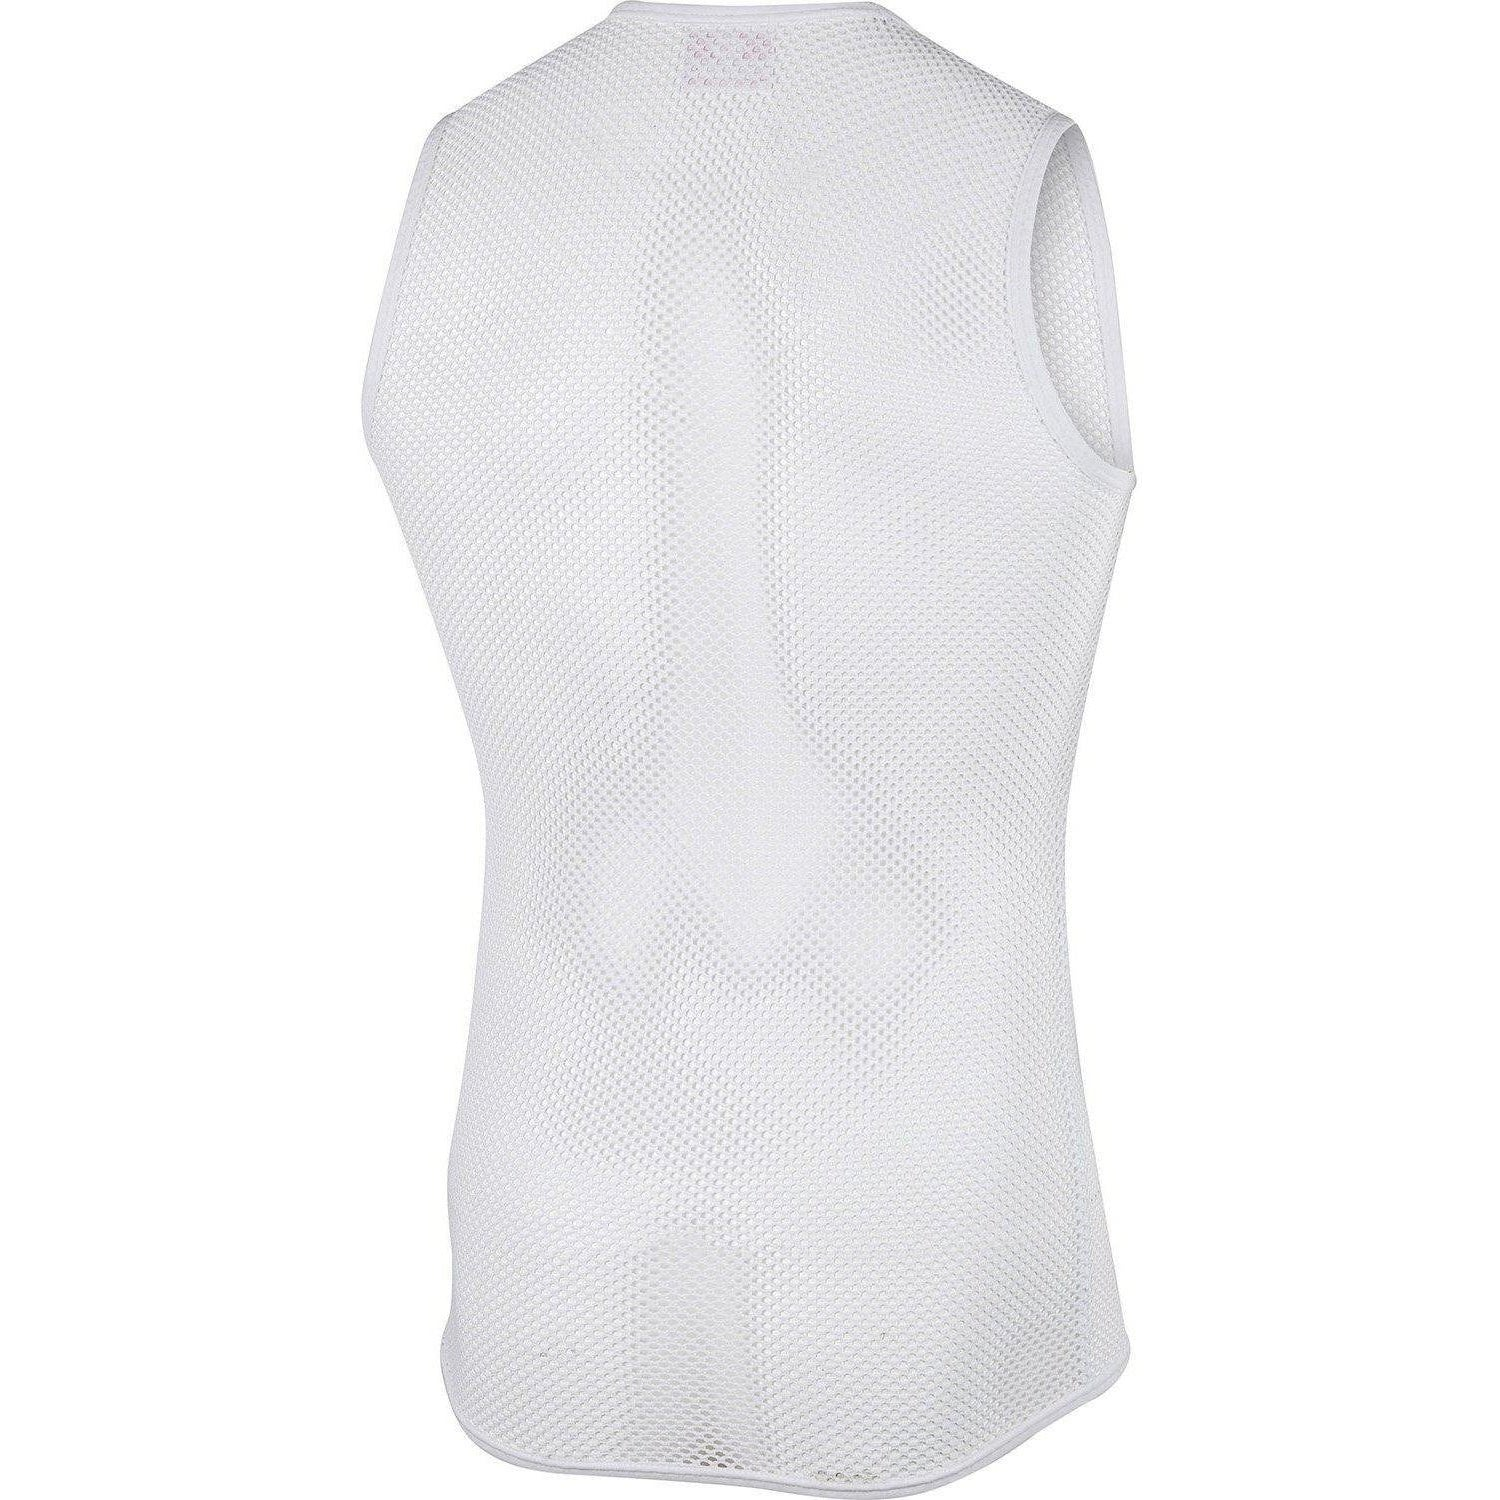 Castelli-Castelli Core Mesh 3 Sleeveless Base Layer--saddleback-elite-performance-cycling